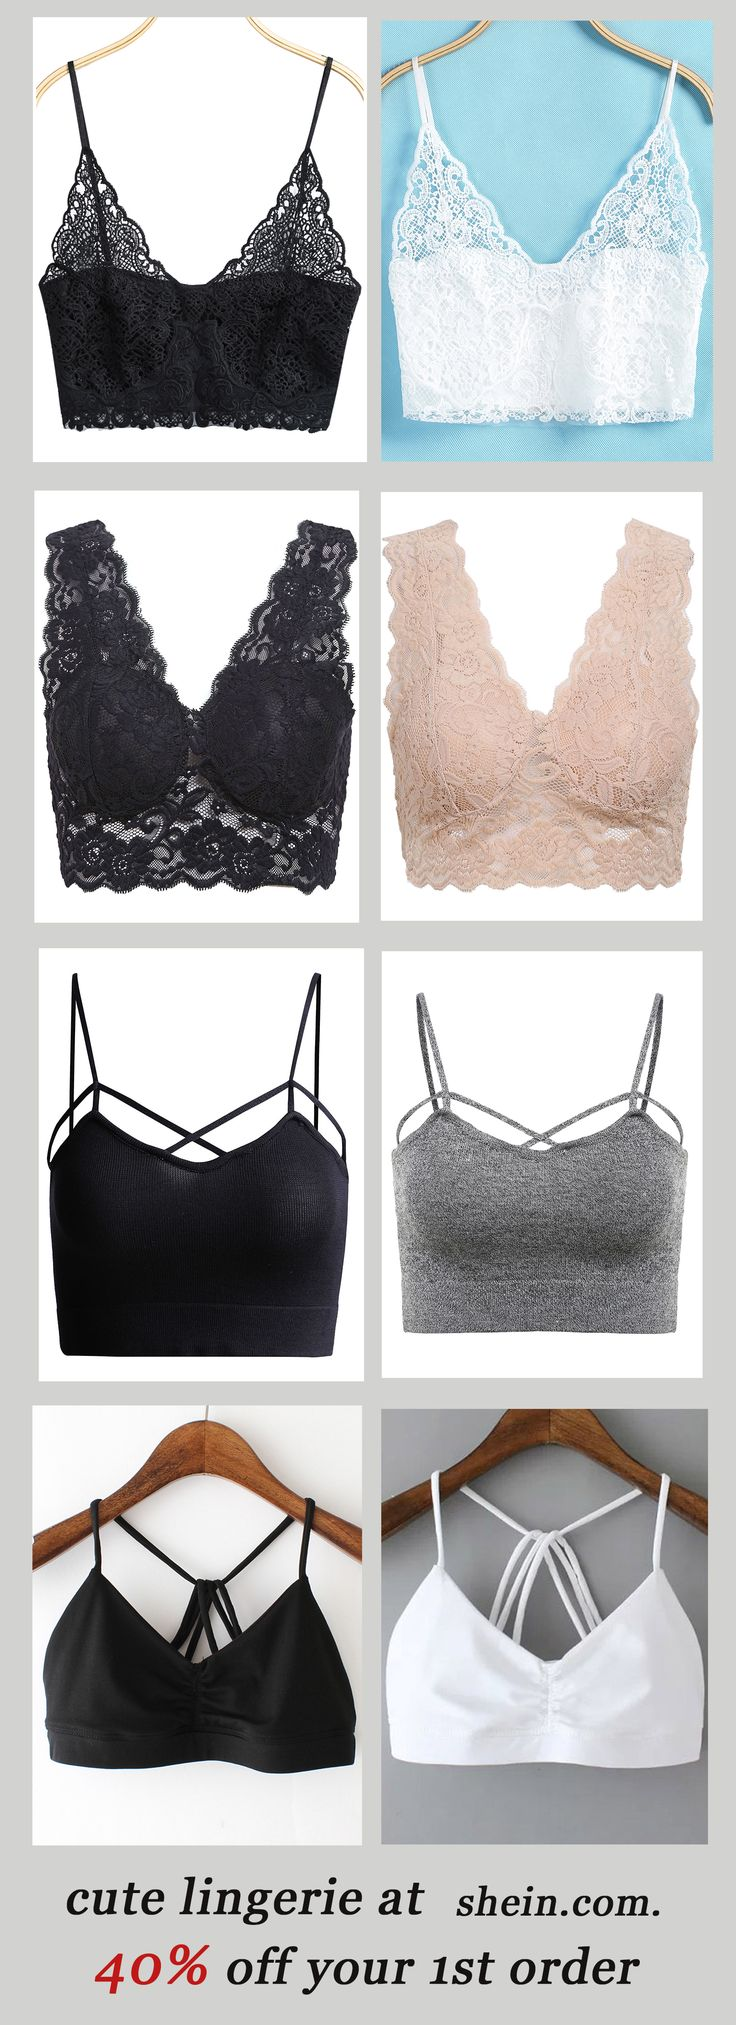 Cute bralette collection, sheer bralette, lace bralette,racerback bralette and more with 40% off 1st order!